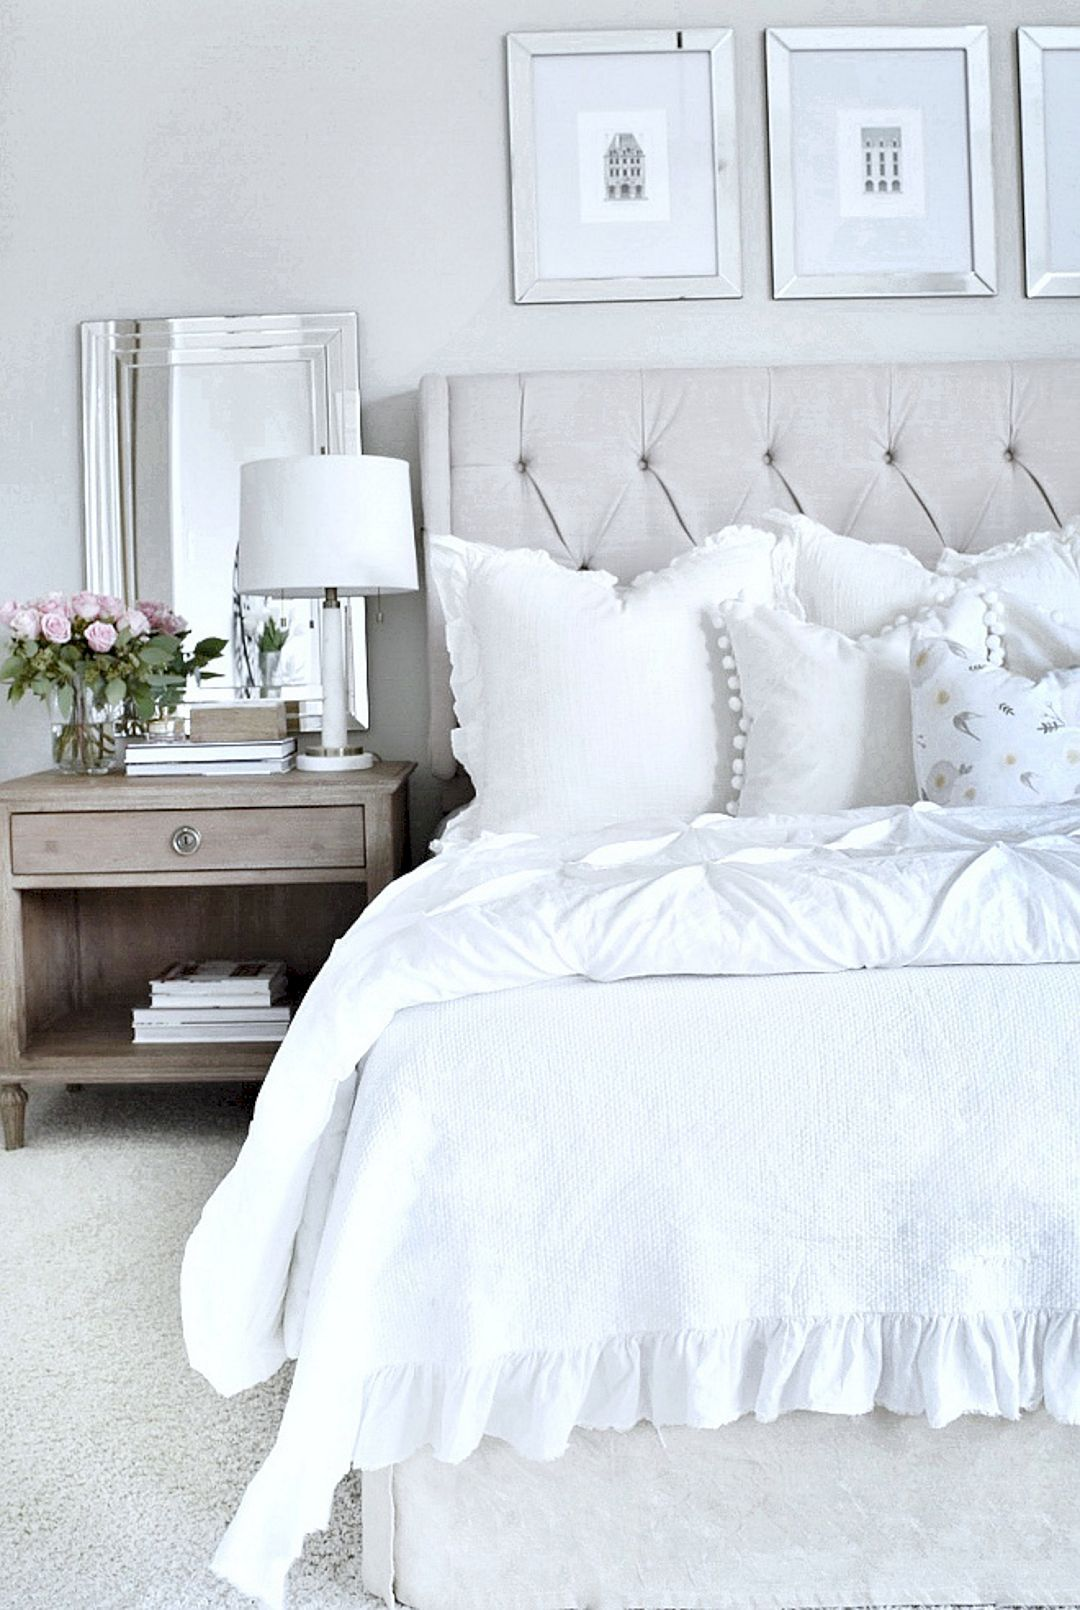 Awesome 13 DIY Rustic & Romantic Master Bedroom Ideas On a ...